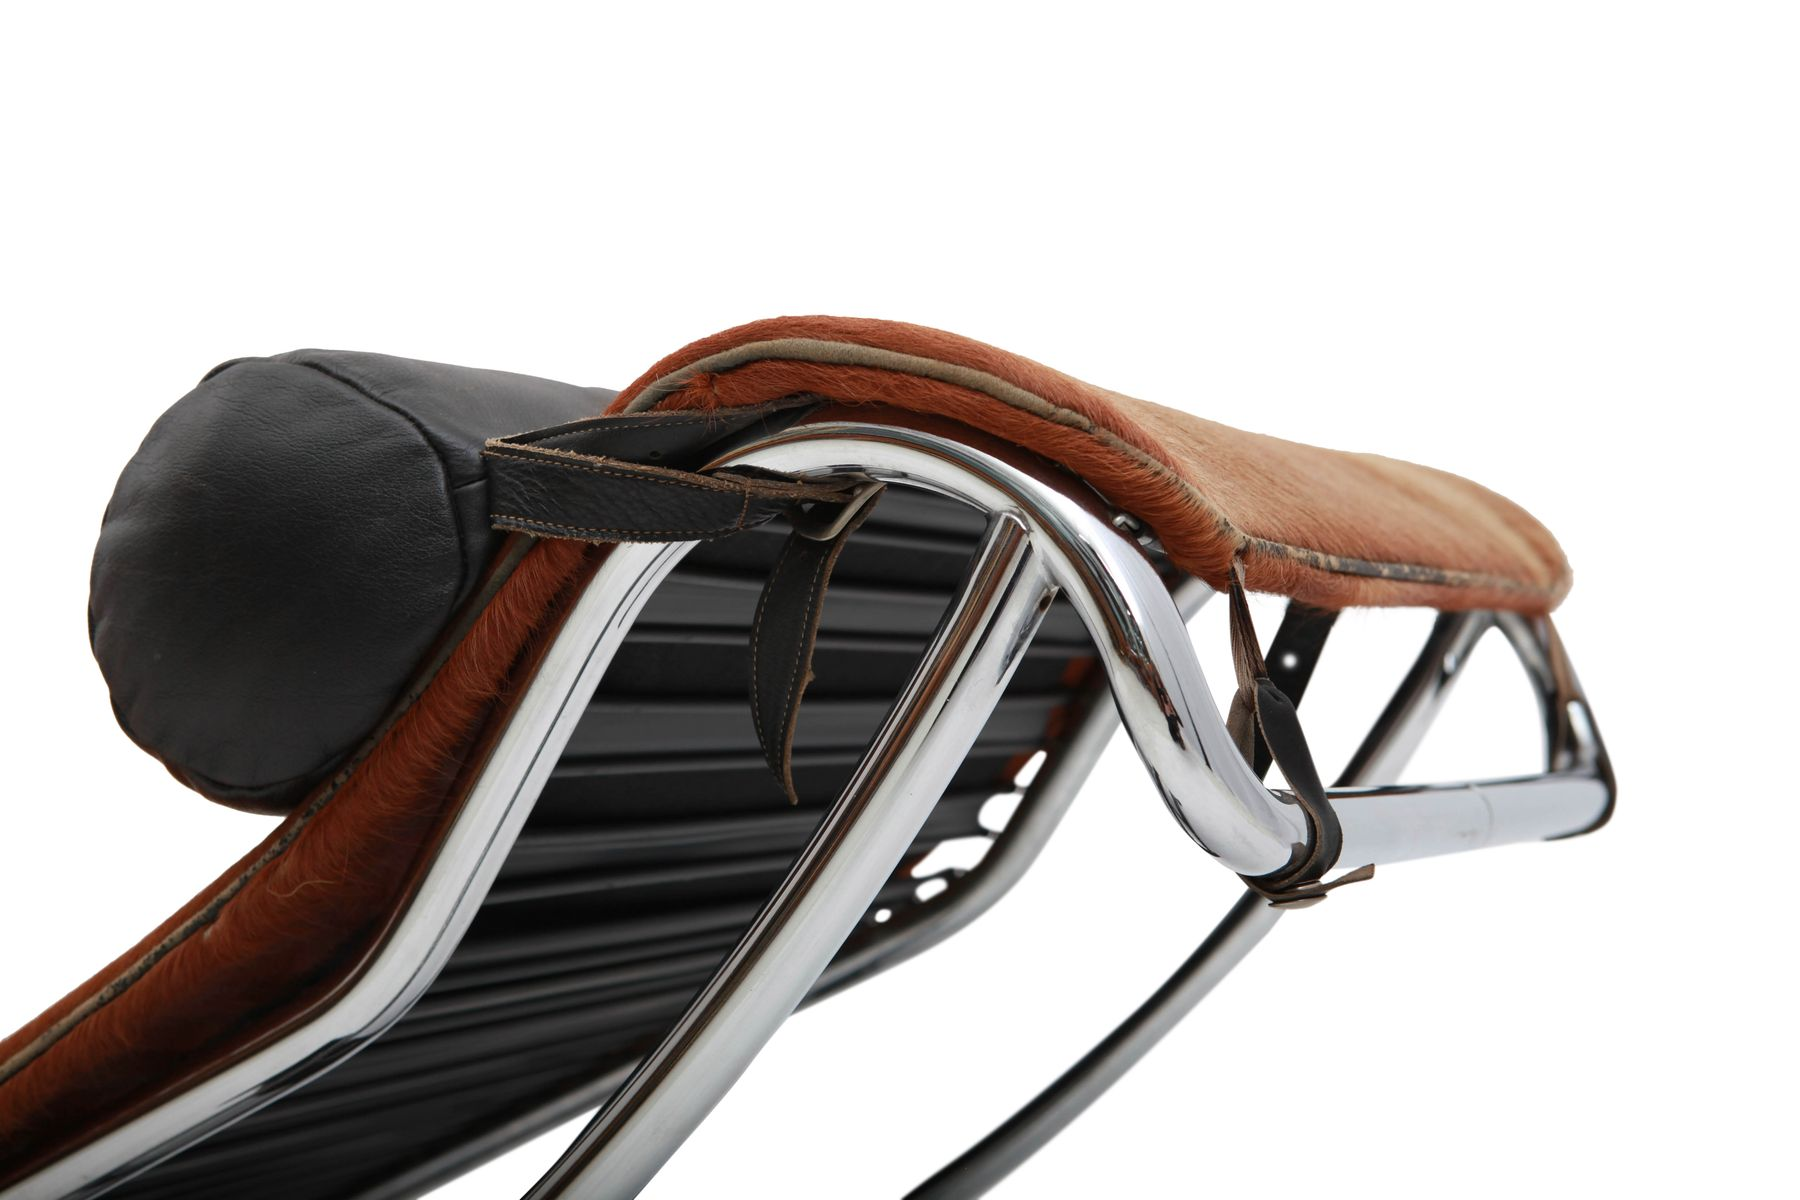 le corbusier chaise longue pony skin with Le Corbusier Lc 4 4257 on Id F 5990763 likewise Id F 6332623 moreover Corbusier Chaise Design Fidelity Lounge Le Corbusier Chaise Longue Originale Prezzo likewise Id F 7811013 additionally Id F 1940782.